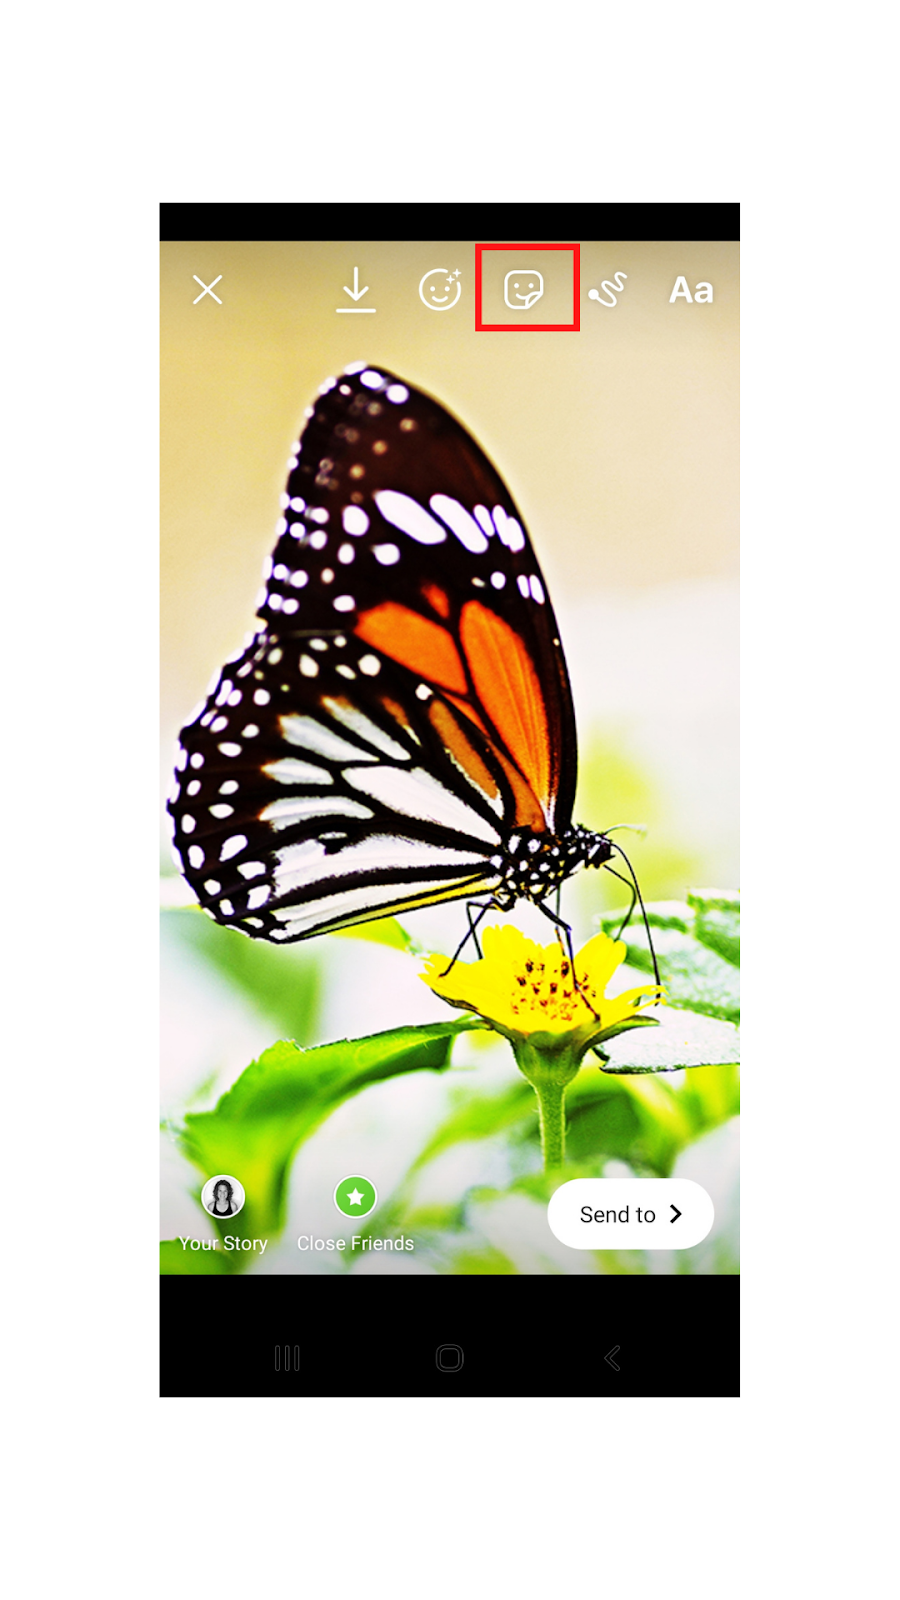 Picture of butterfly and tapping sticker icon